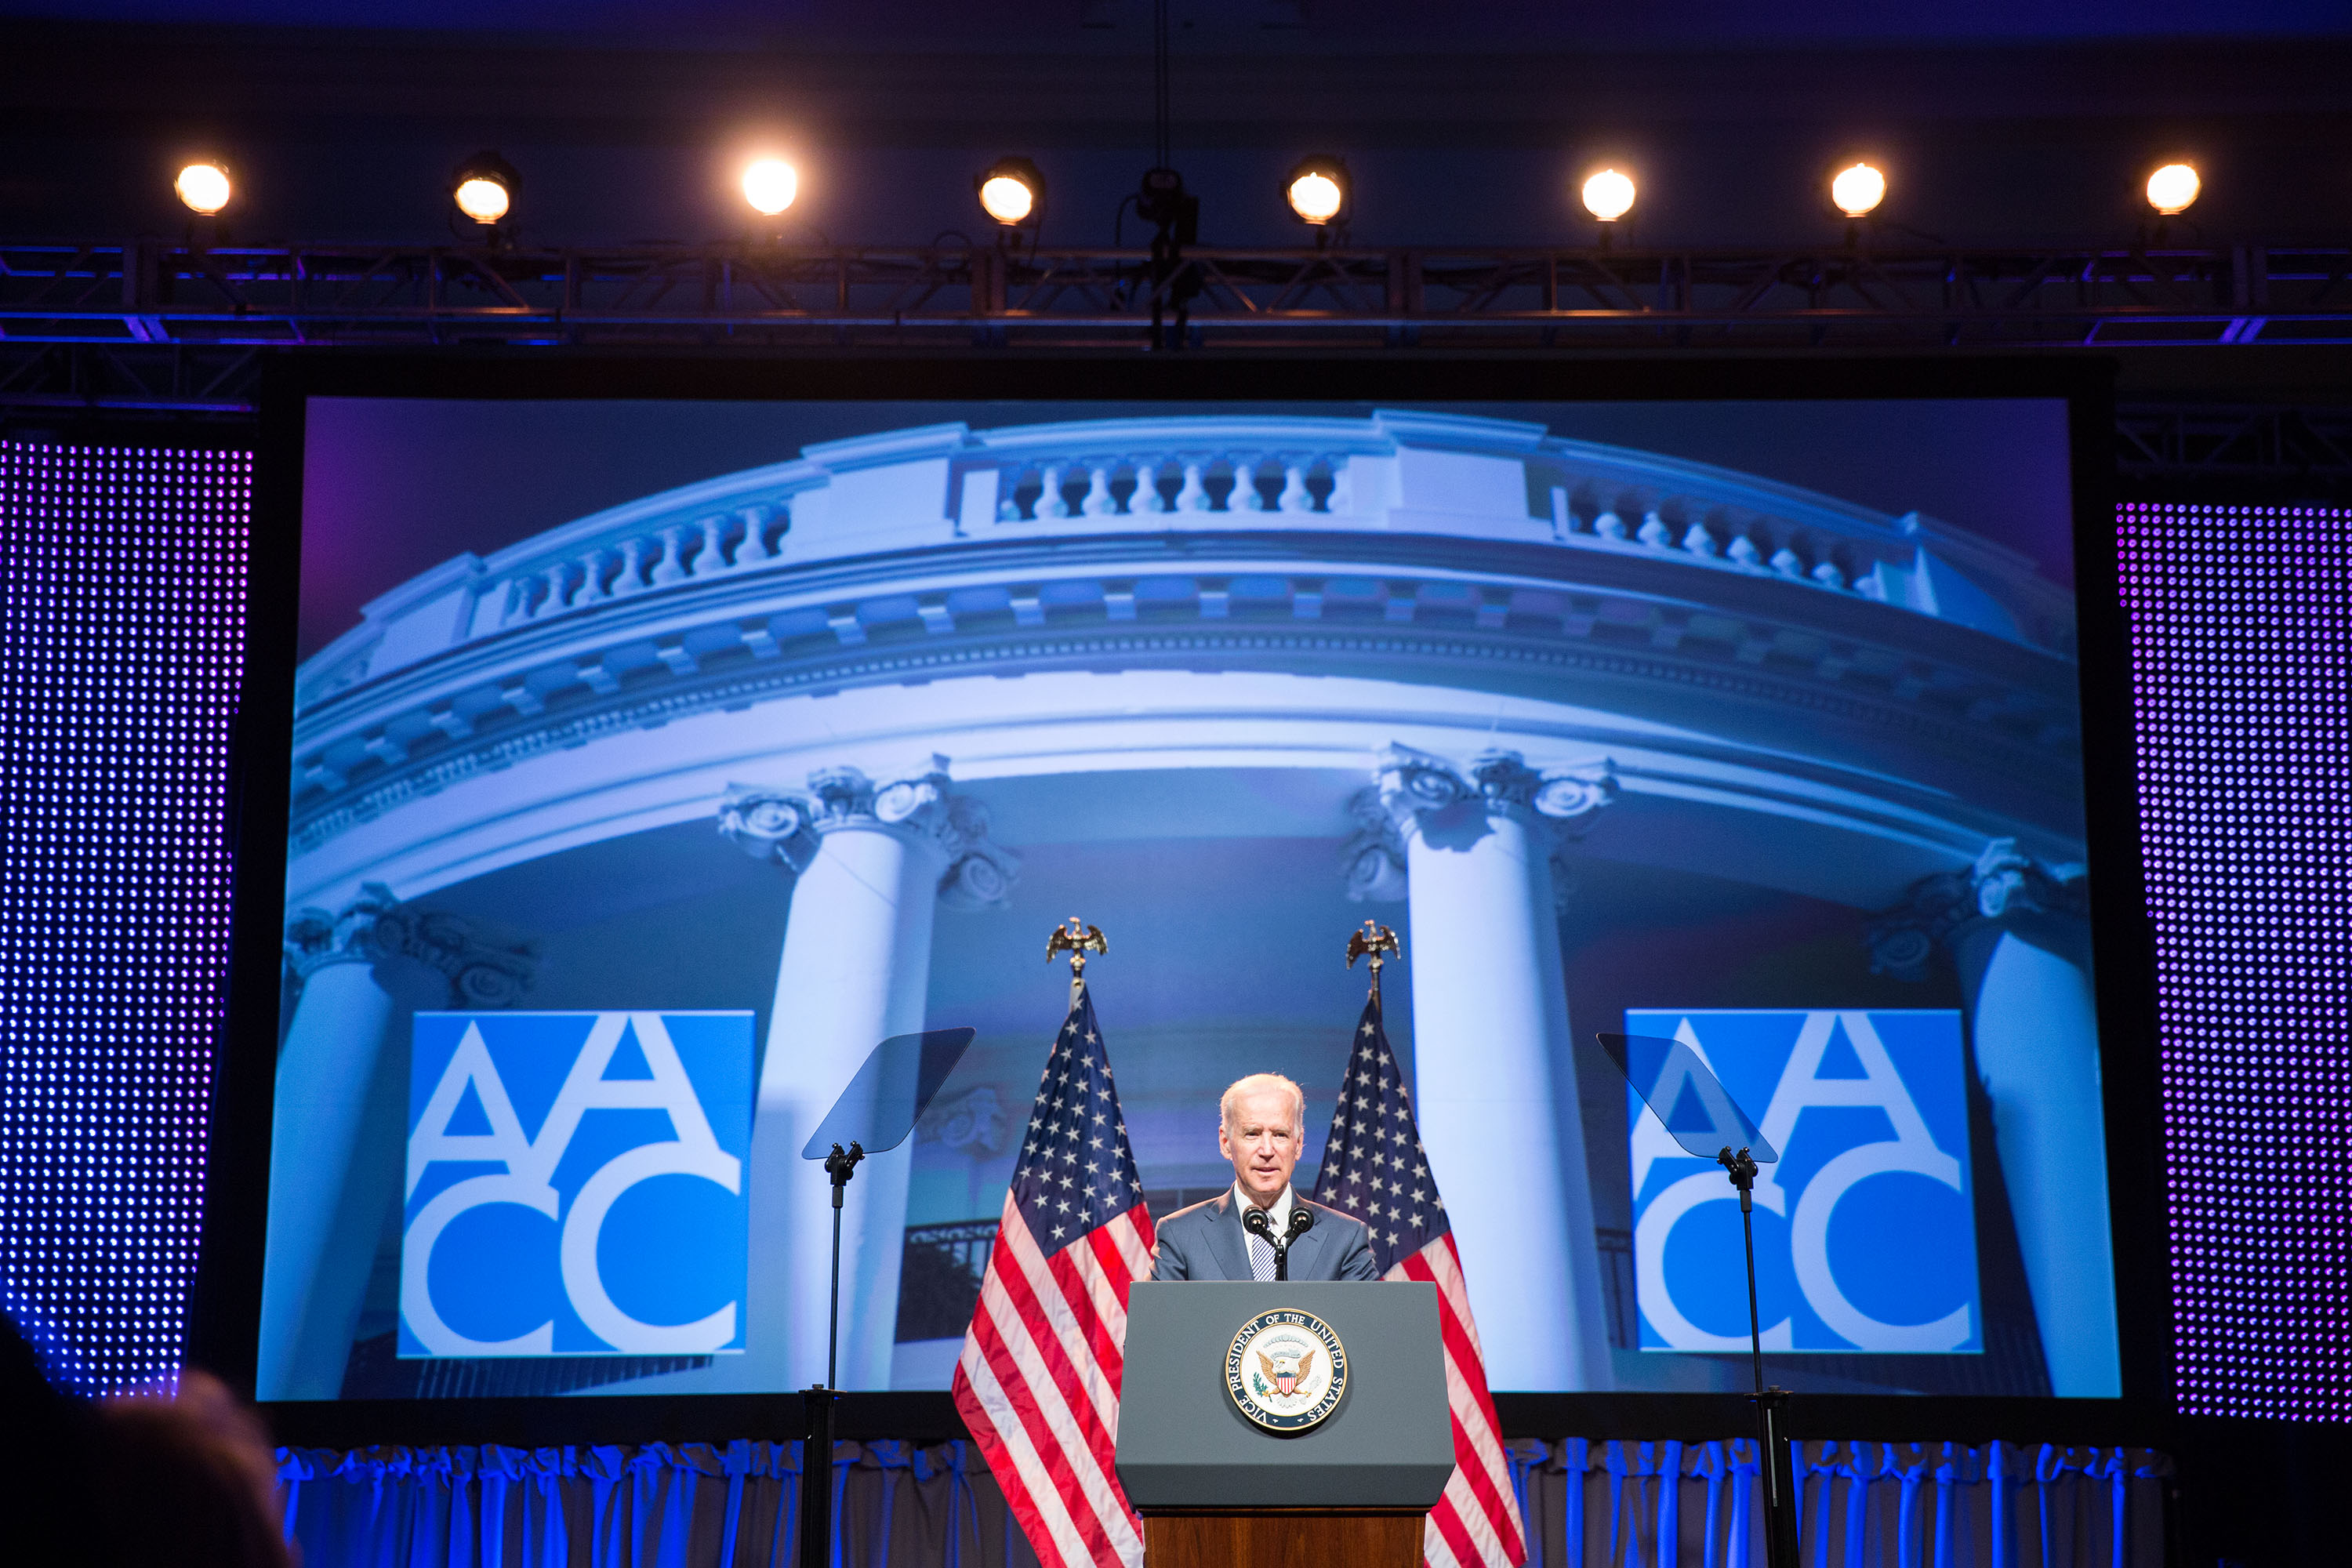 Vice President Joe Biden speaks at the 94th Annual Convention of the American Association of Community Colleges in Washington, D.C., April 7, 2014.